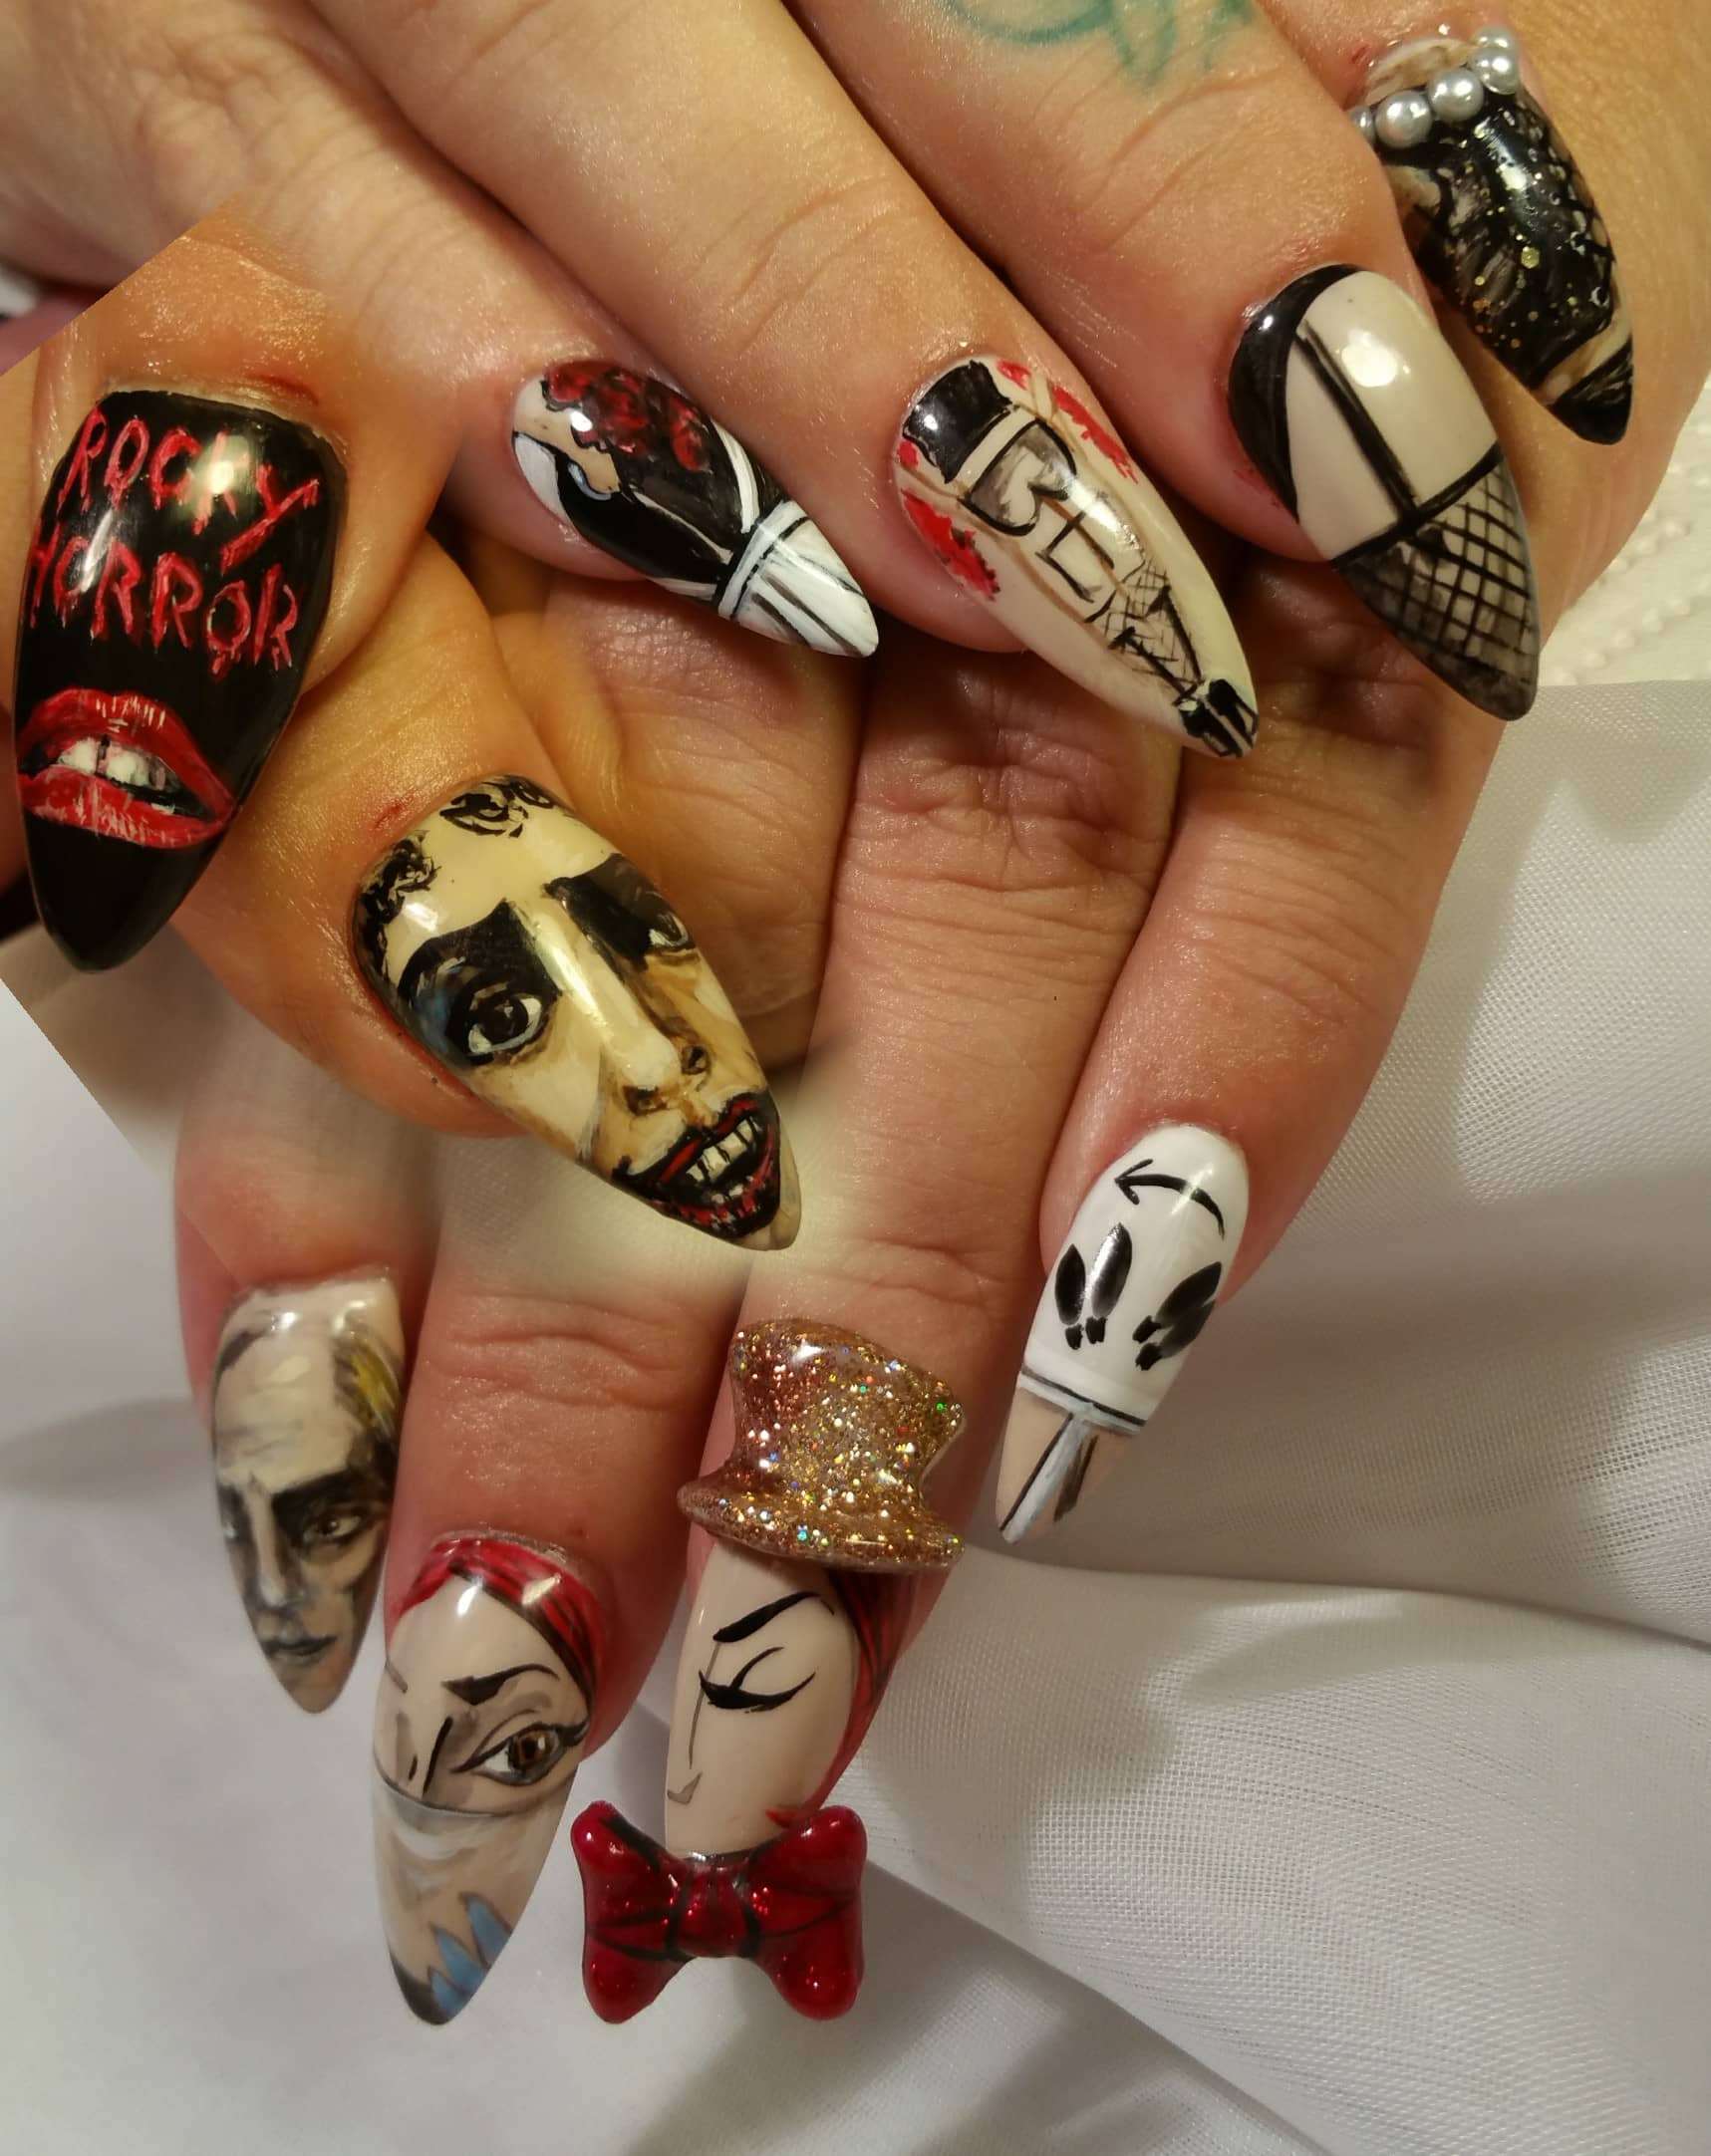 NAILS Next Top Nail Artist